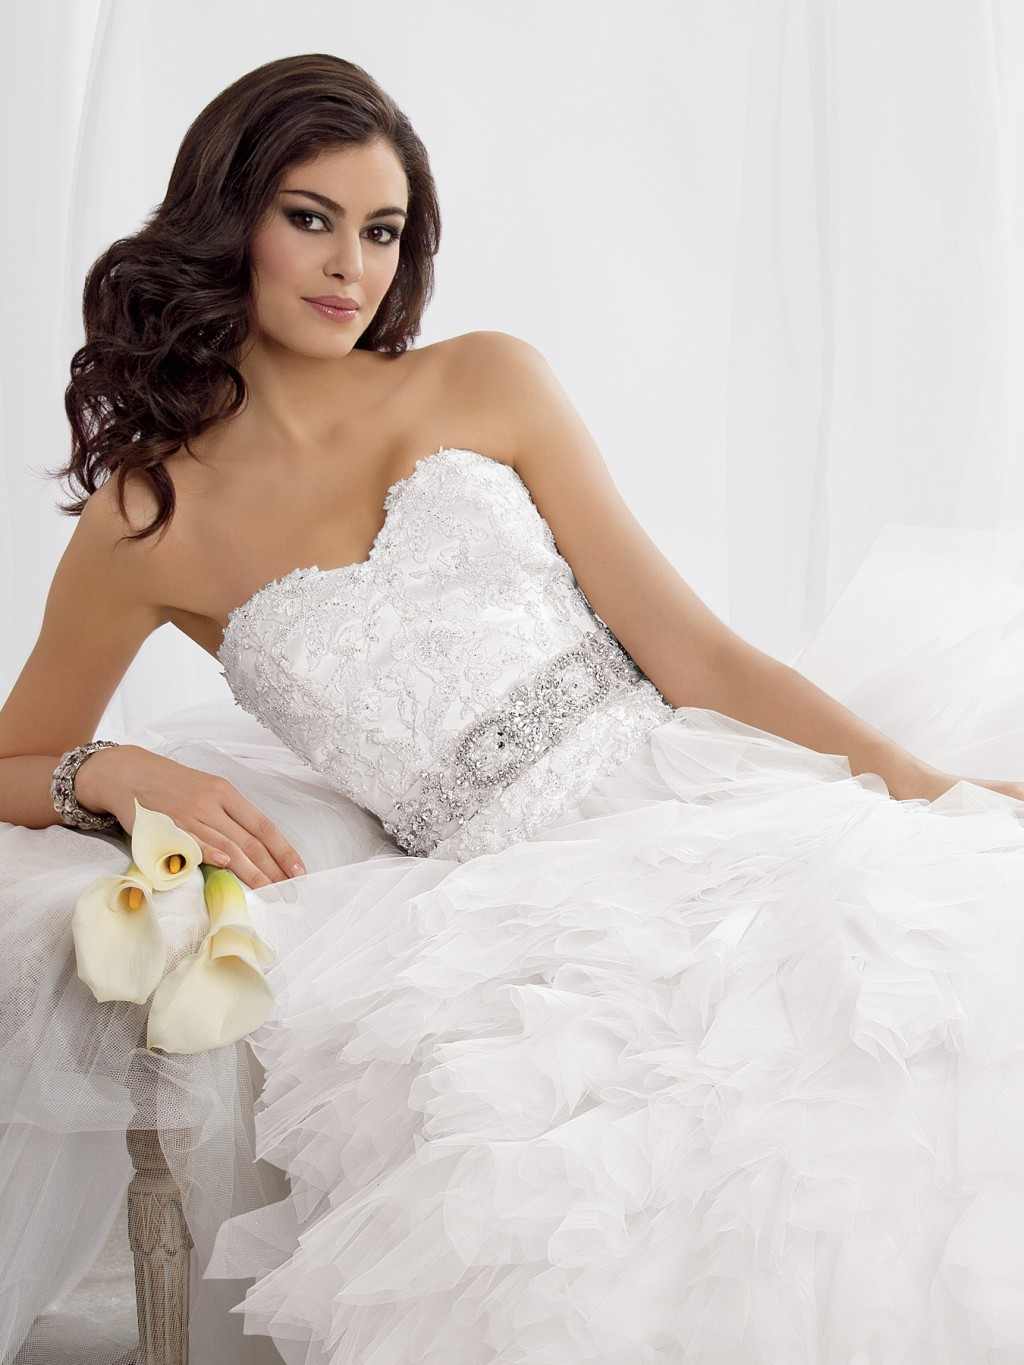 The reflections by jordan 2013 spring bridal collection the the reflections by jordan line of wedding gowns has an alluring feminine style for every bride each reflections wedding dress is sewn to perfection with ombrellifo Choice Image